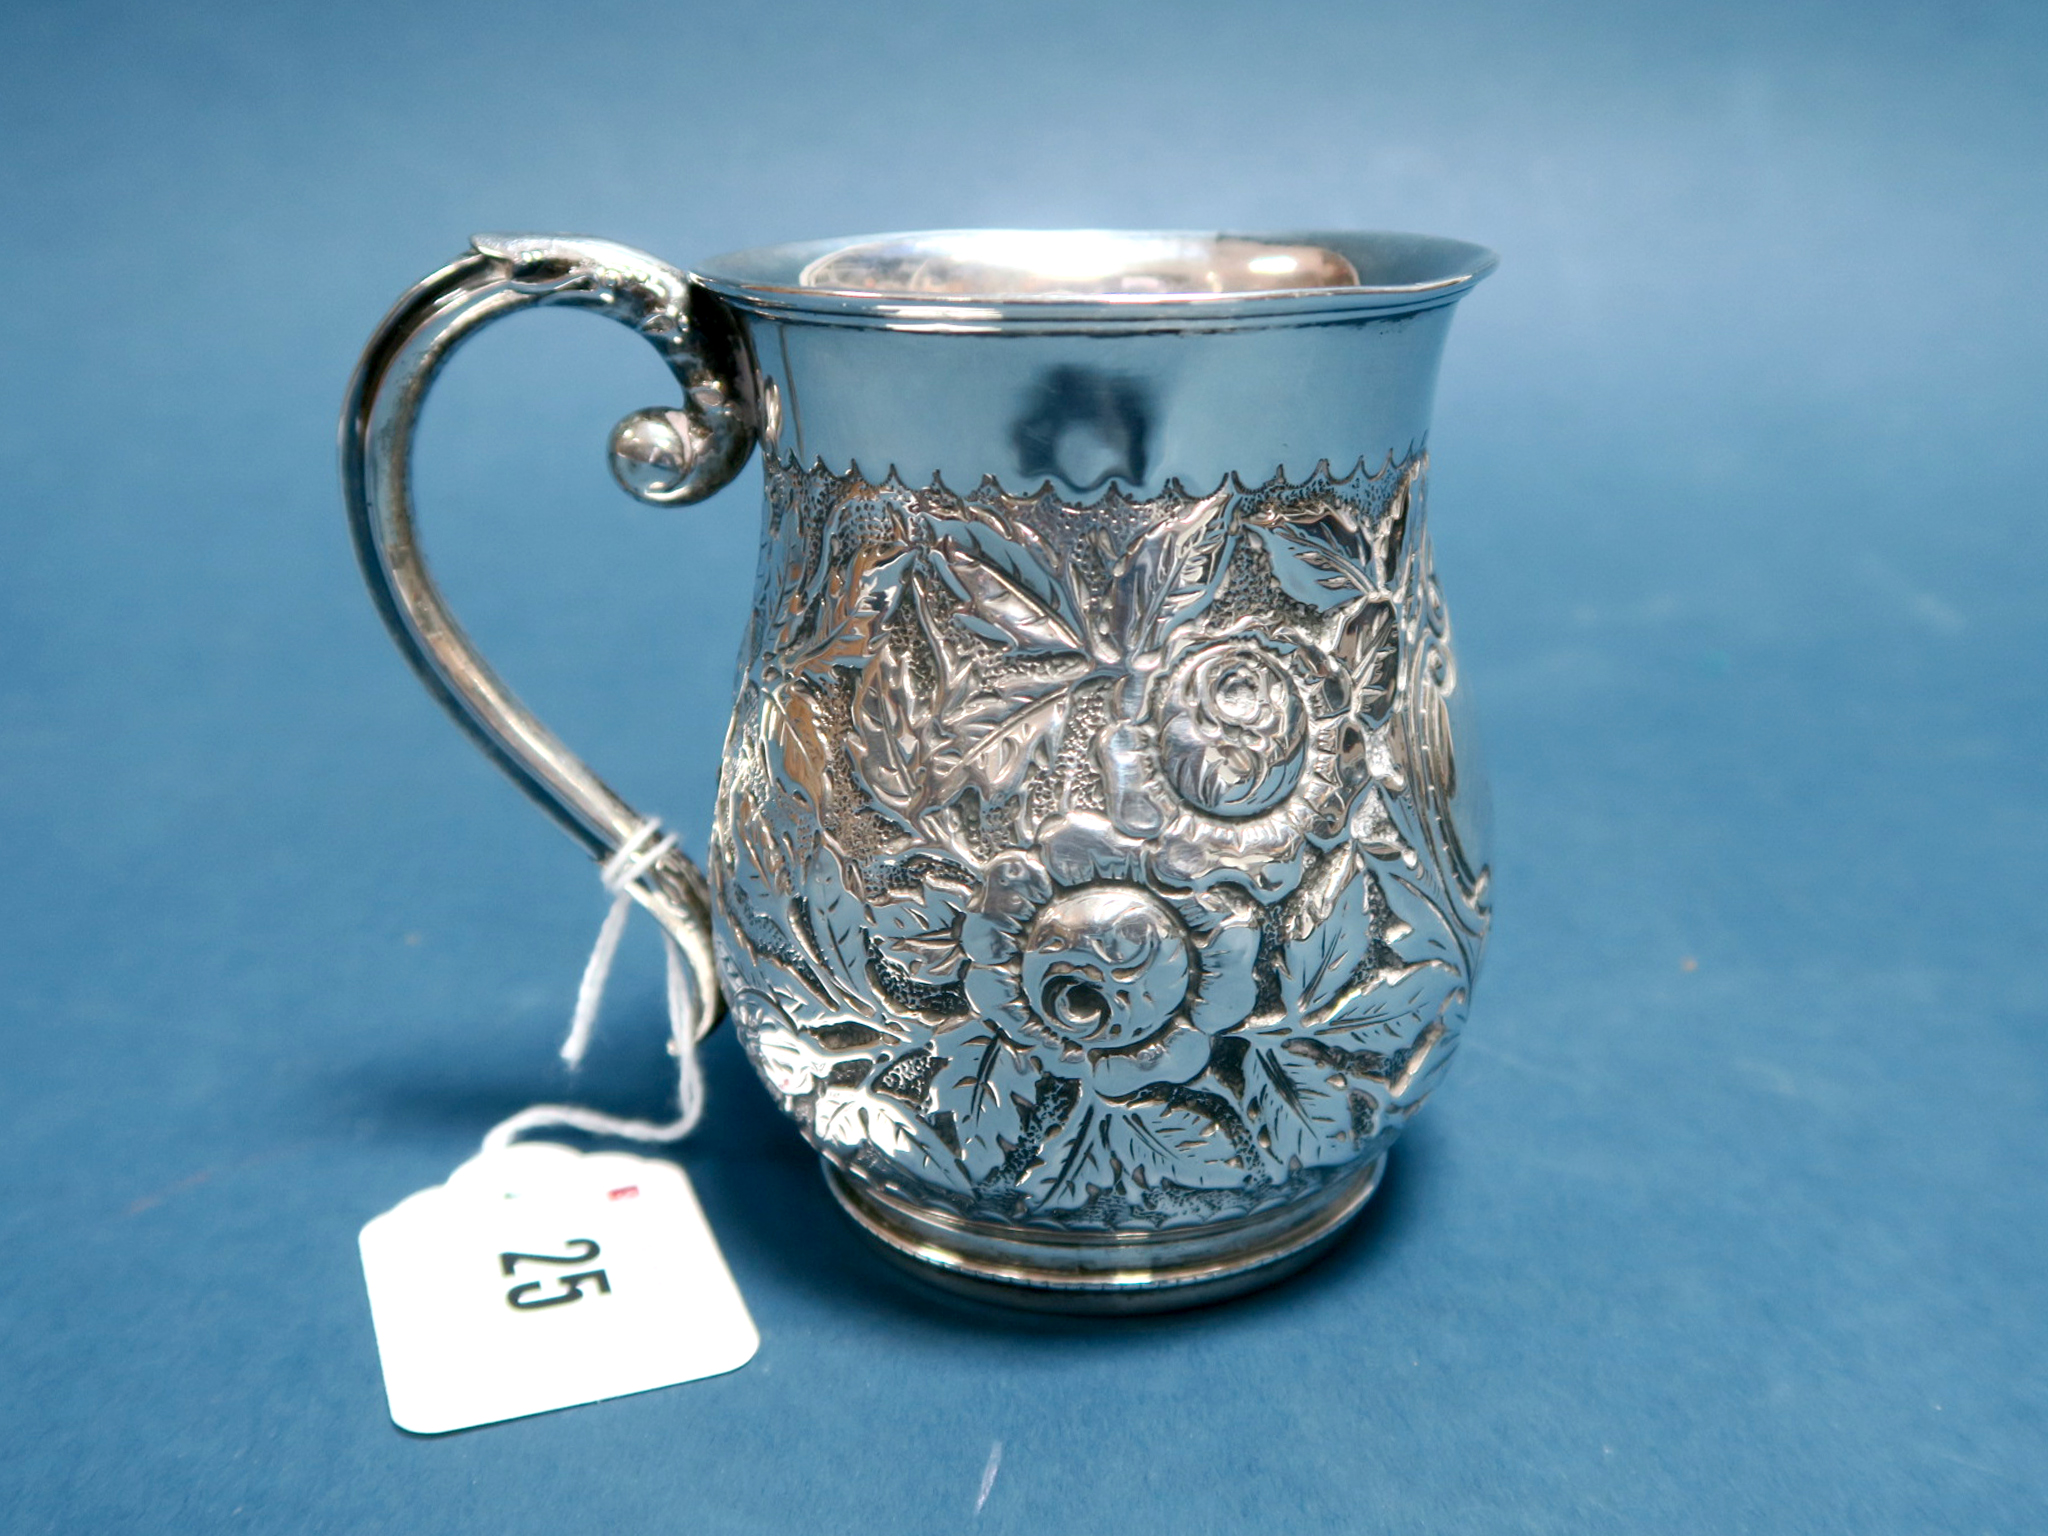 Lot 25 - A Hallmarked Silver Mug, (makes mark rubbed) Birmingham 1894, of baluster form allover detailed in